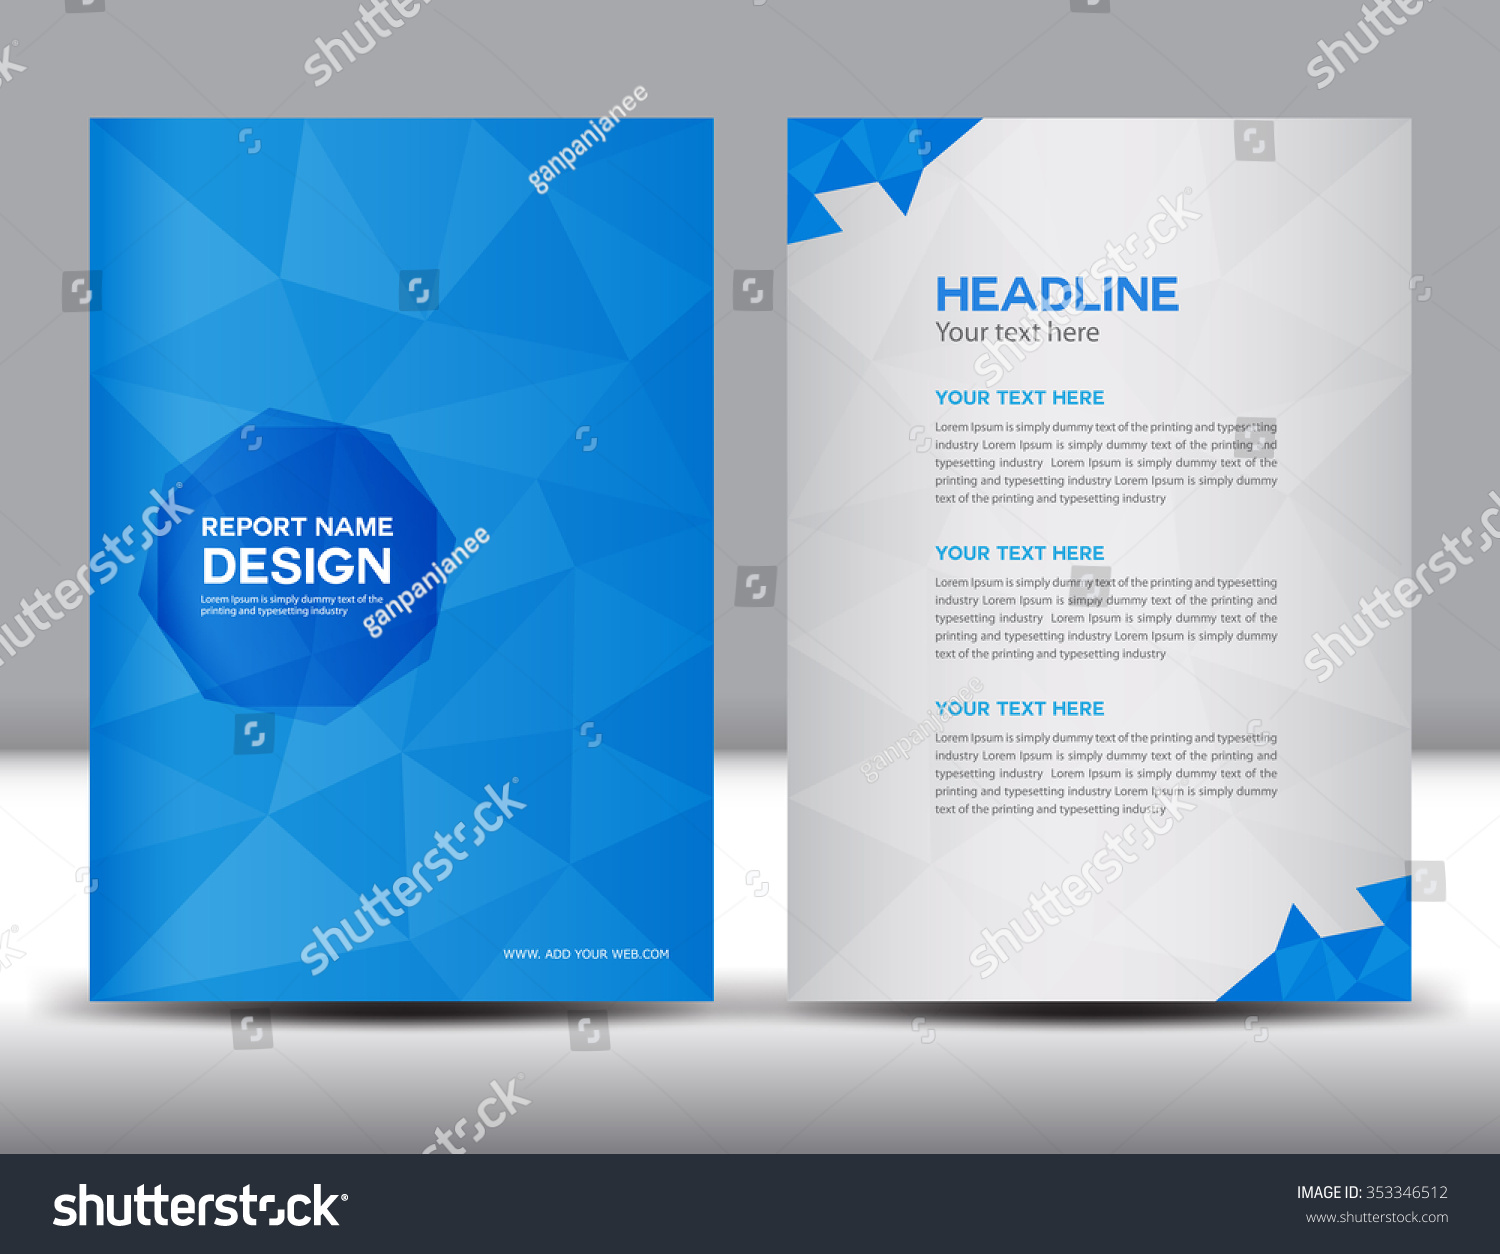 report template design wordpress theme and templates email template design agile document